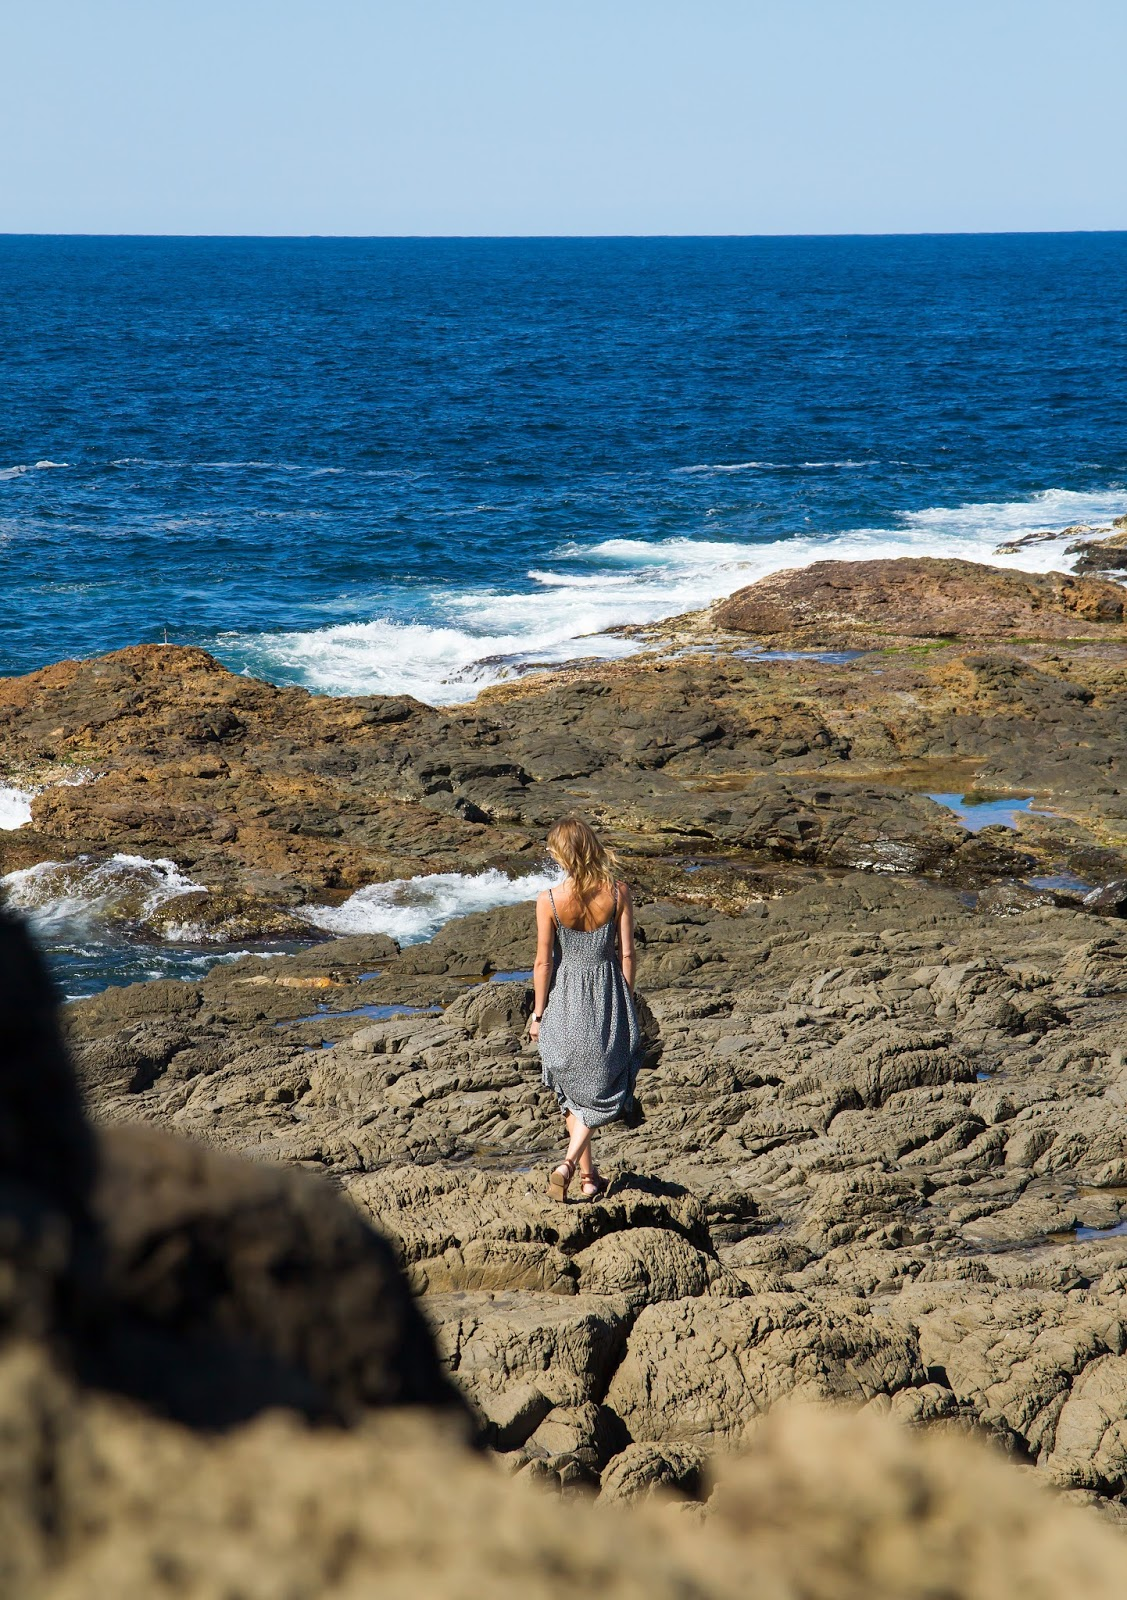 Travel blogger and digital nomad, Alison Hutchinson from Styling My Life, is walking along the rocks at the Kiama Blow Hole.